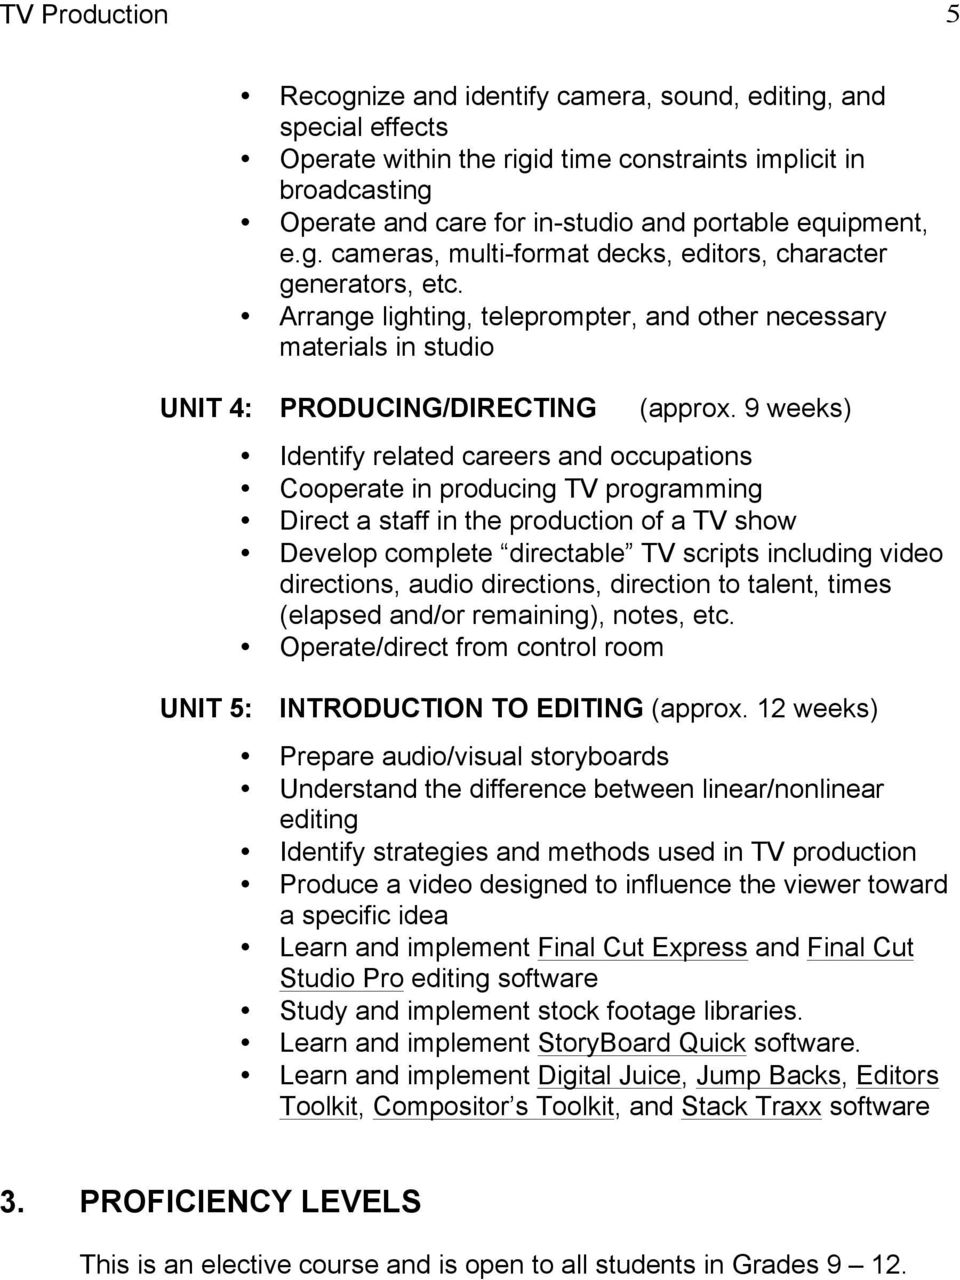 9 weeks) Identify related careers and occupations Cooperate in producing TV programming Direct a staff in the production of a TV show Develop complete directable TV scripts including video